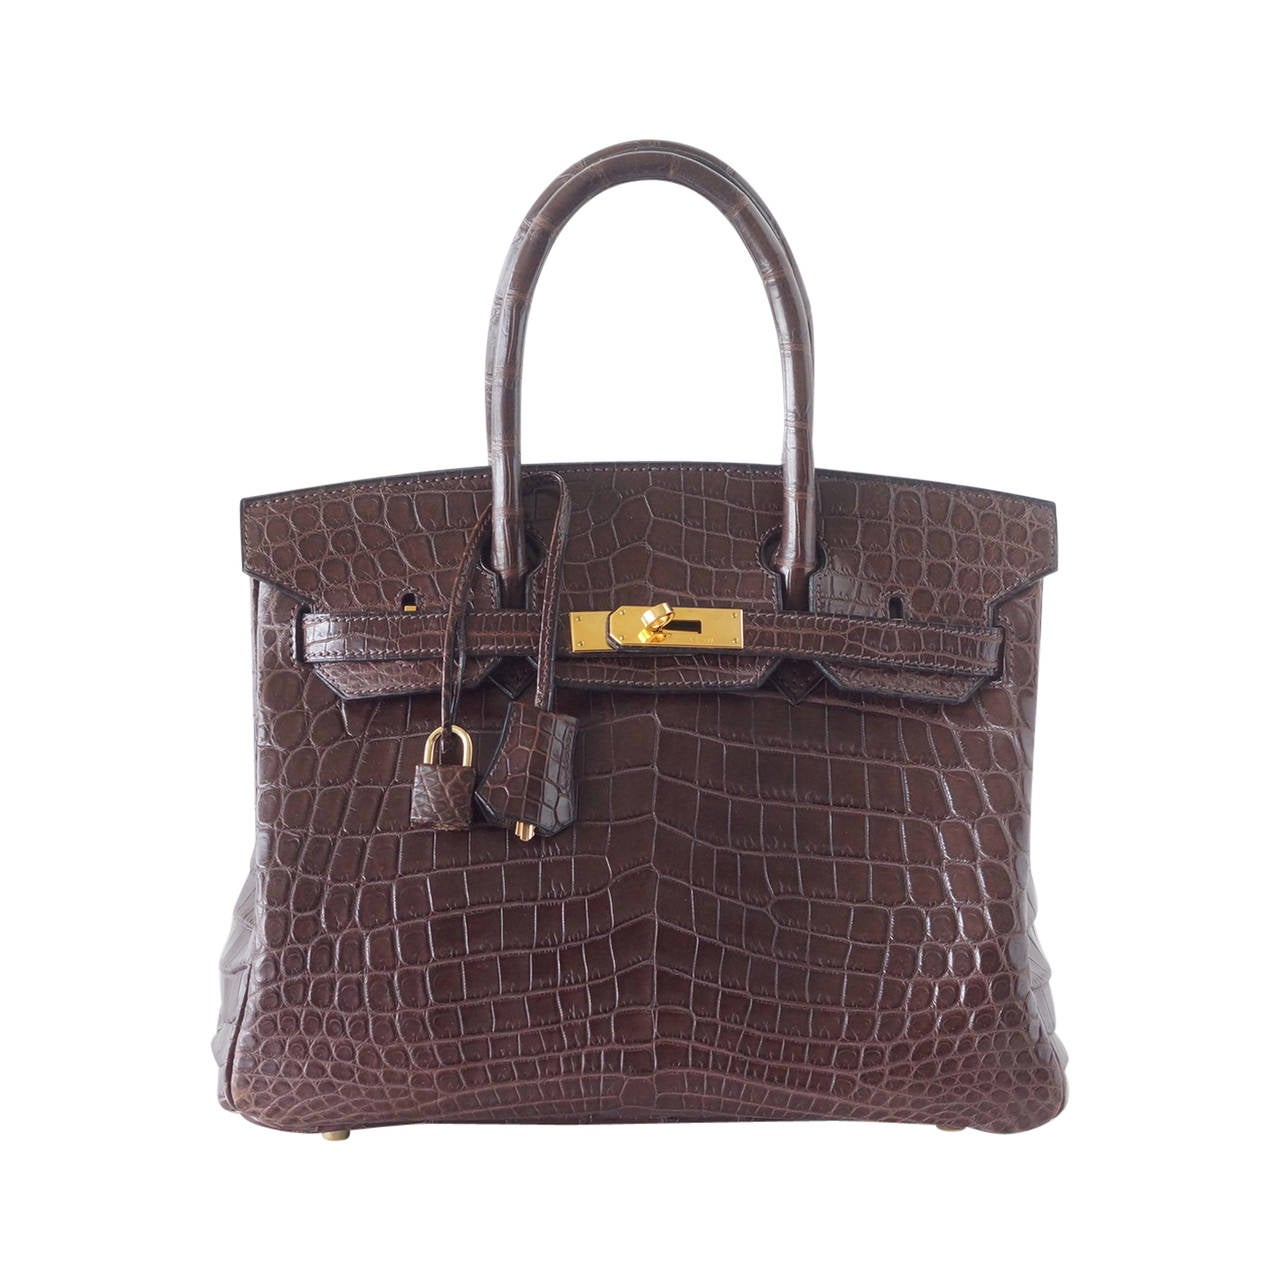 HERMES BIRKIN 30 bag Matte Havanne Crocodile gold hardware rare toile interior For Sale